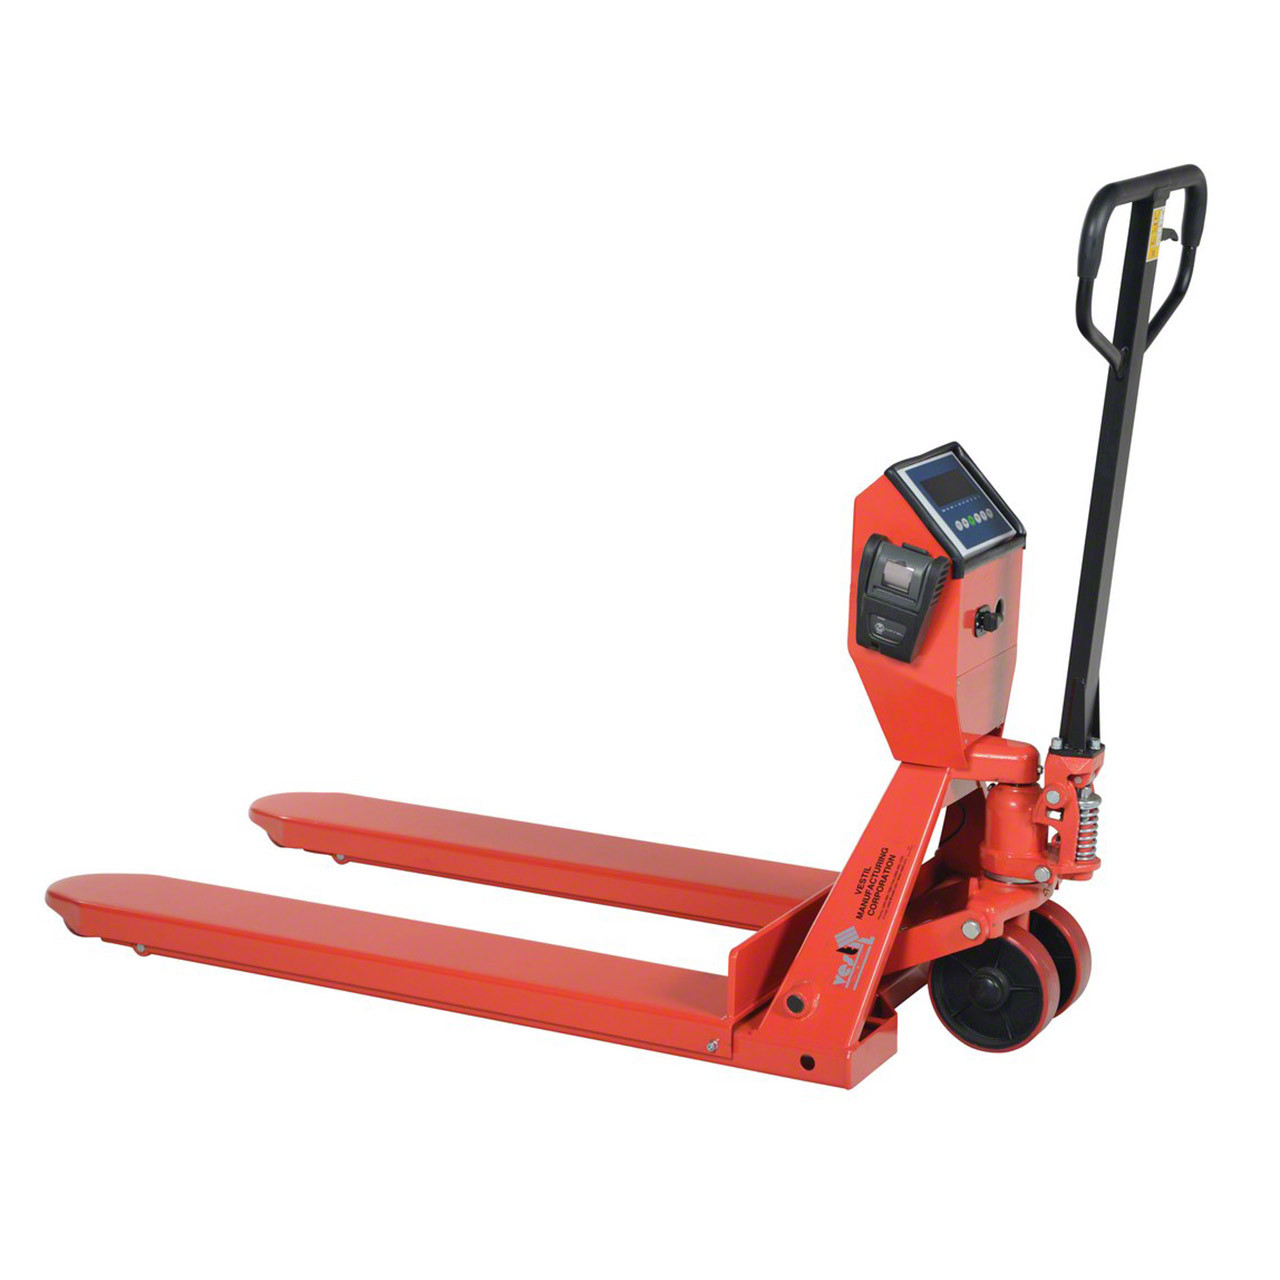 The PM-2748 pallet truck with scale and printer